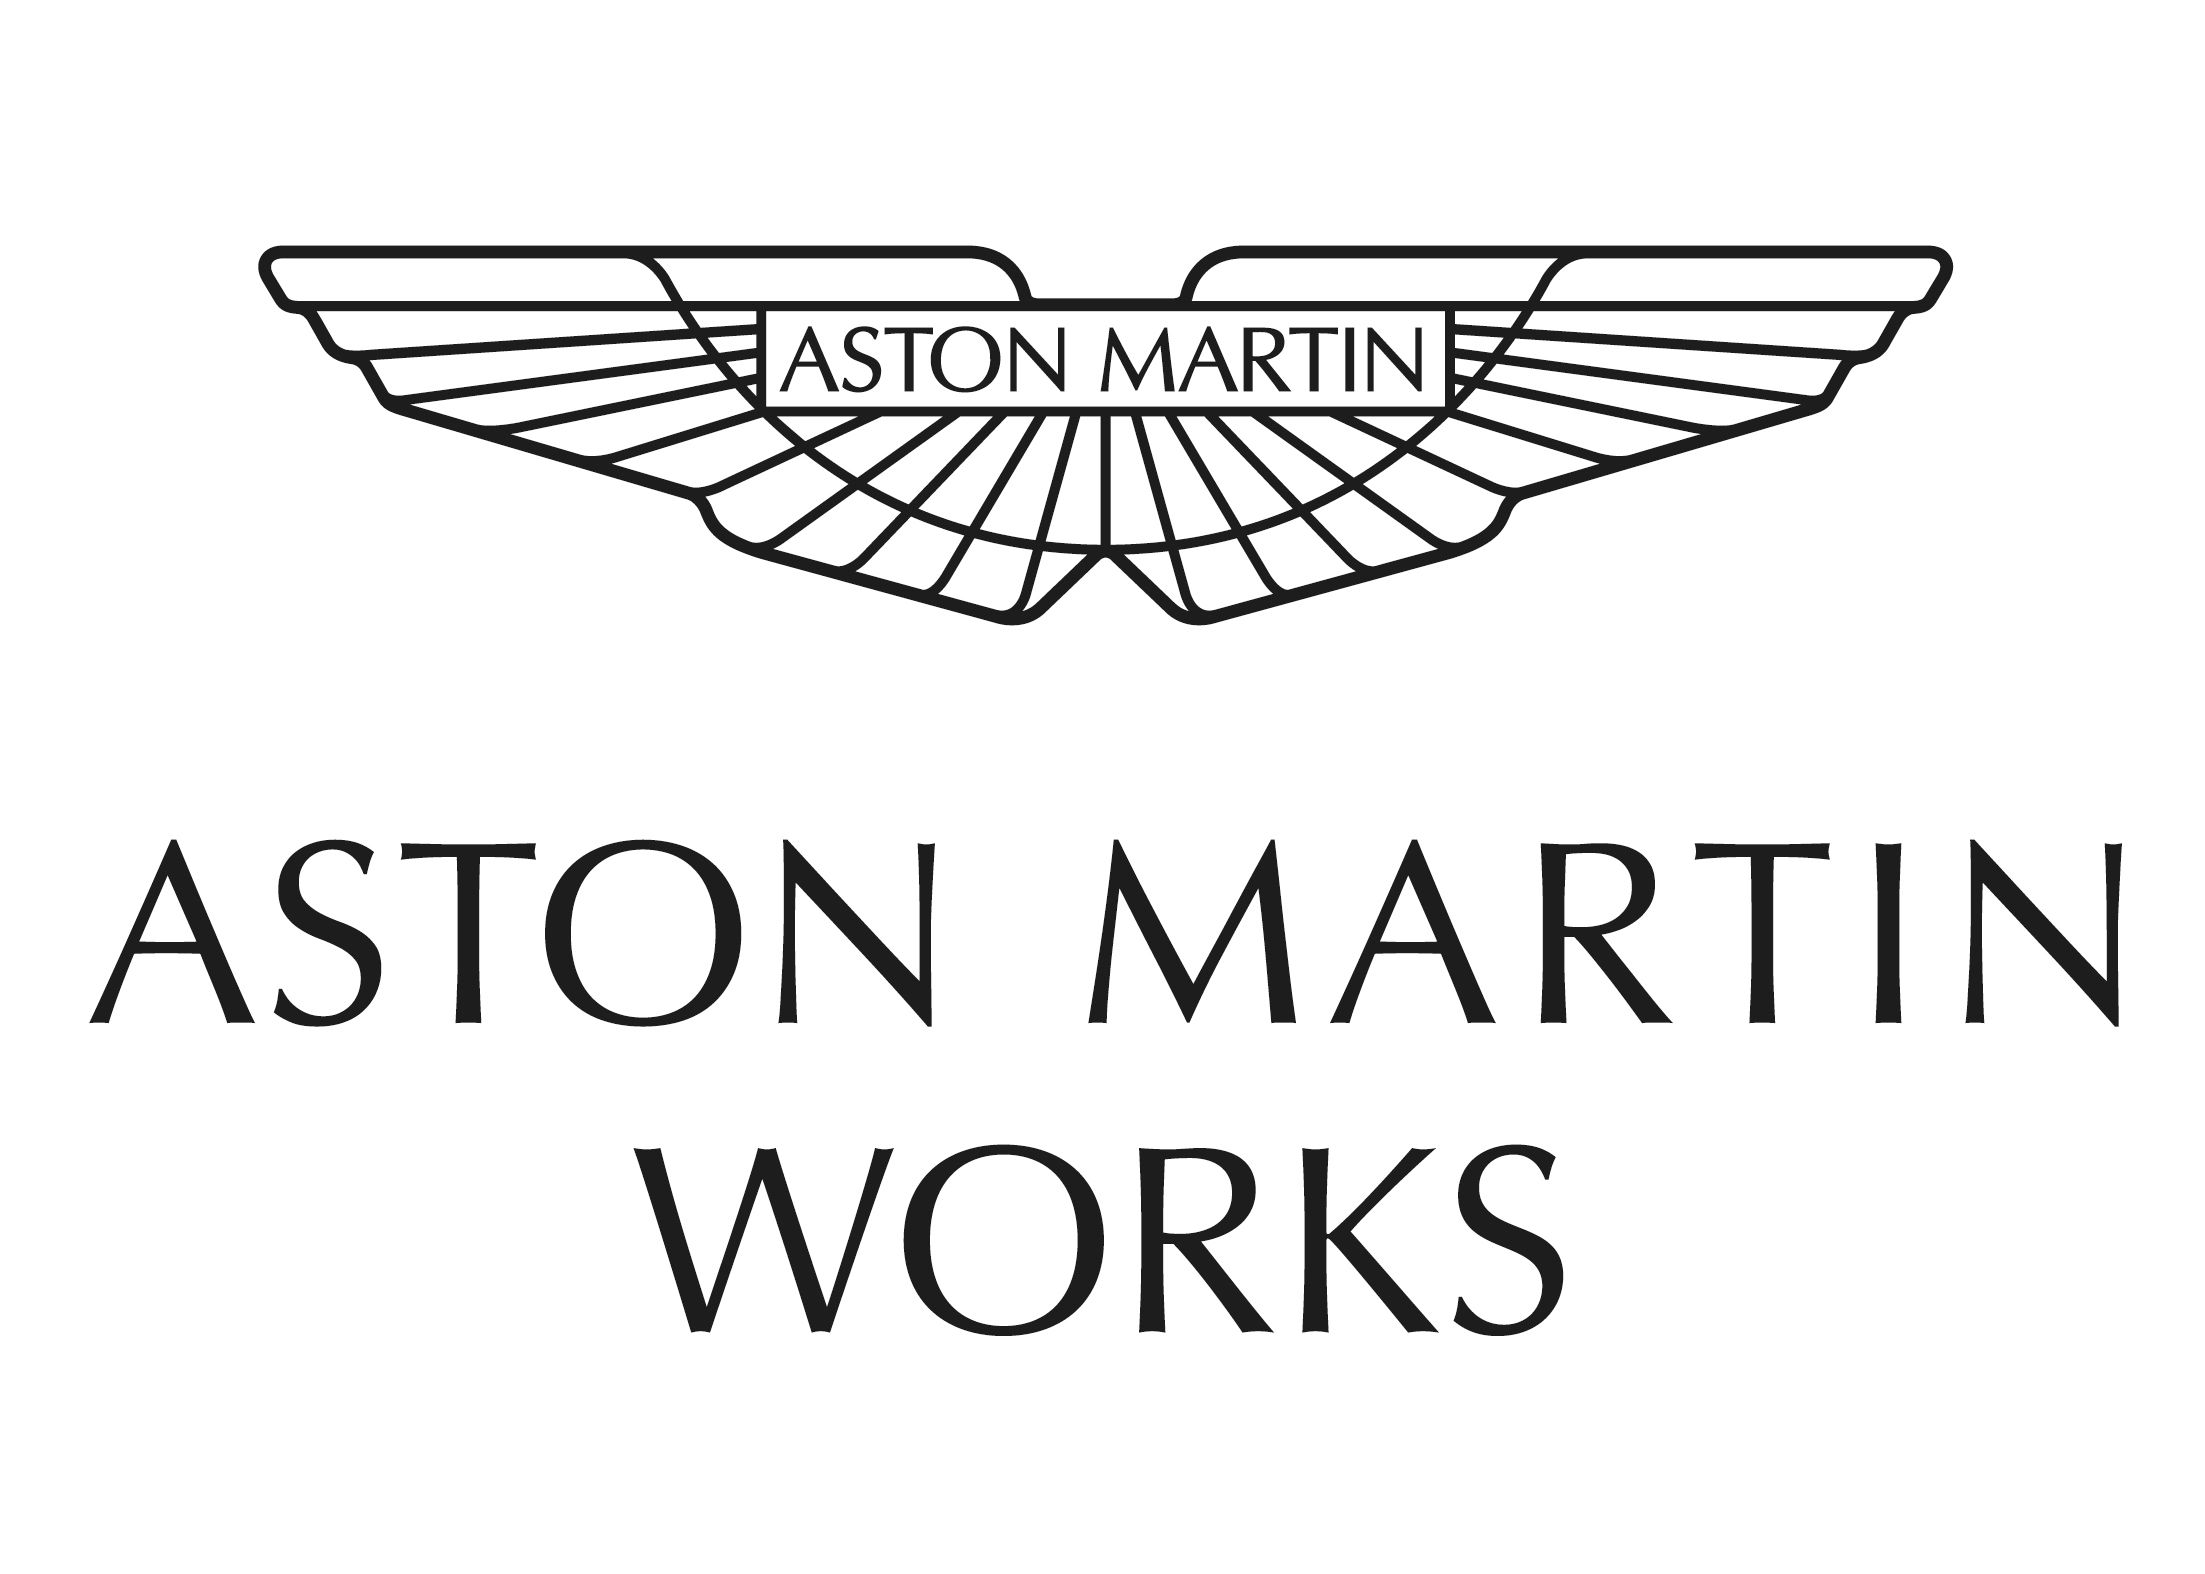 Used Aston Martin Virage cars for sale with PistonHeads